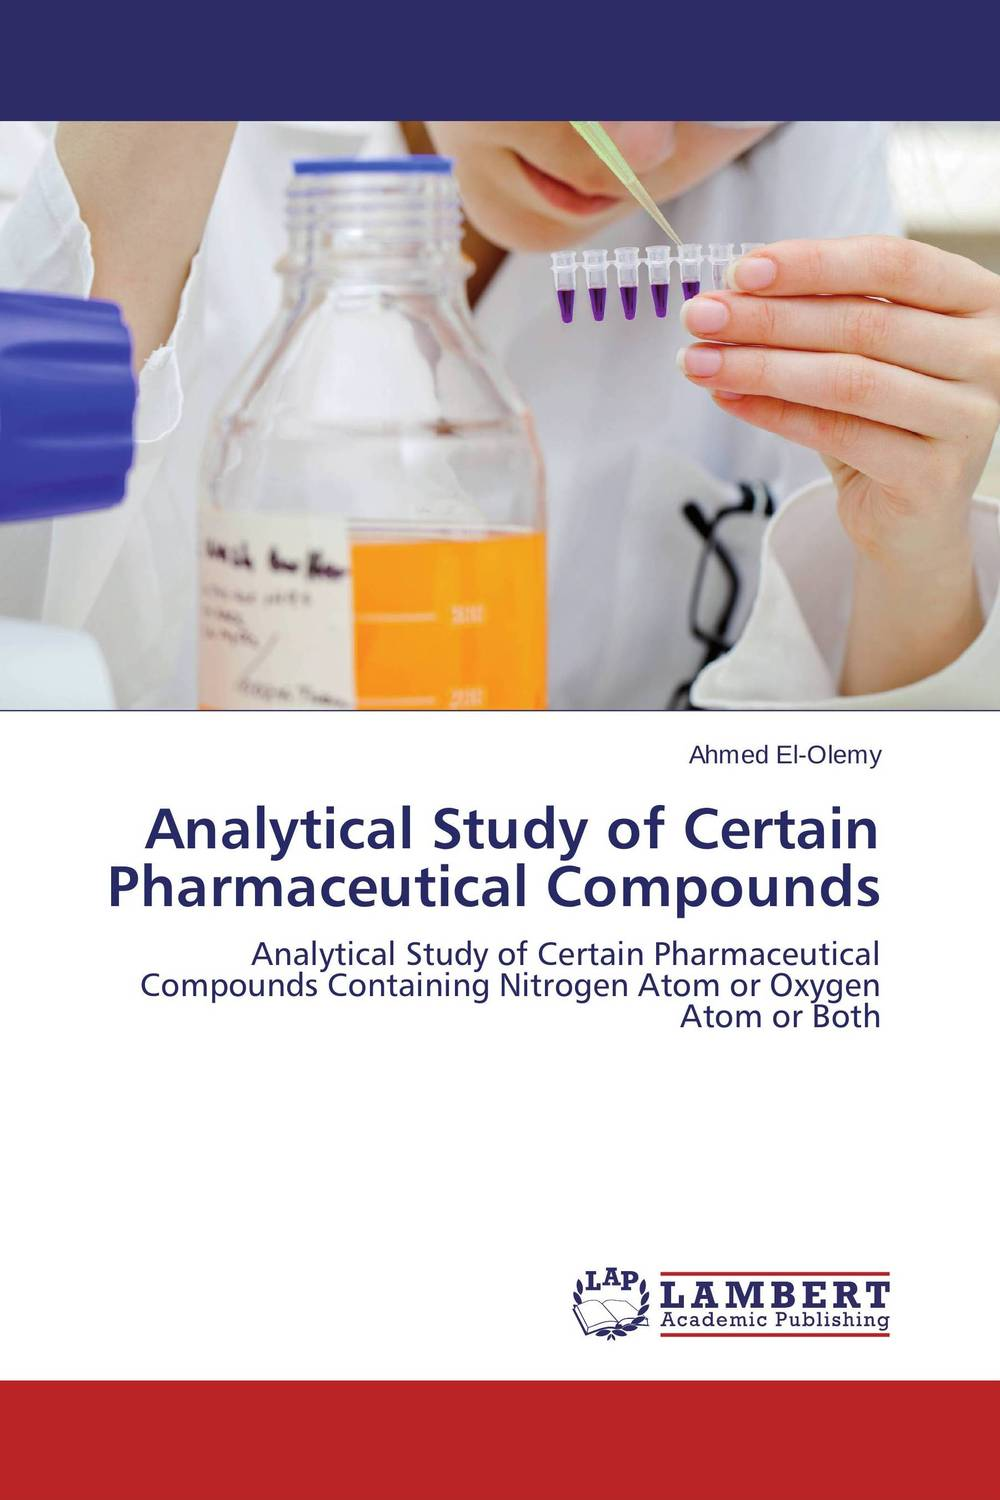 Analytical Study of Certain Pharmaceutical Compounds marine pharmaceutical compounds